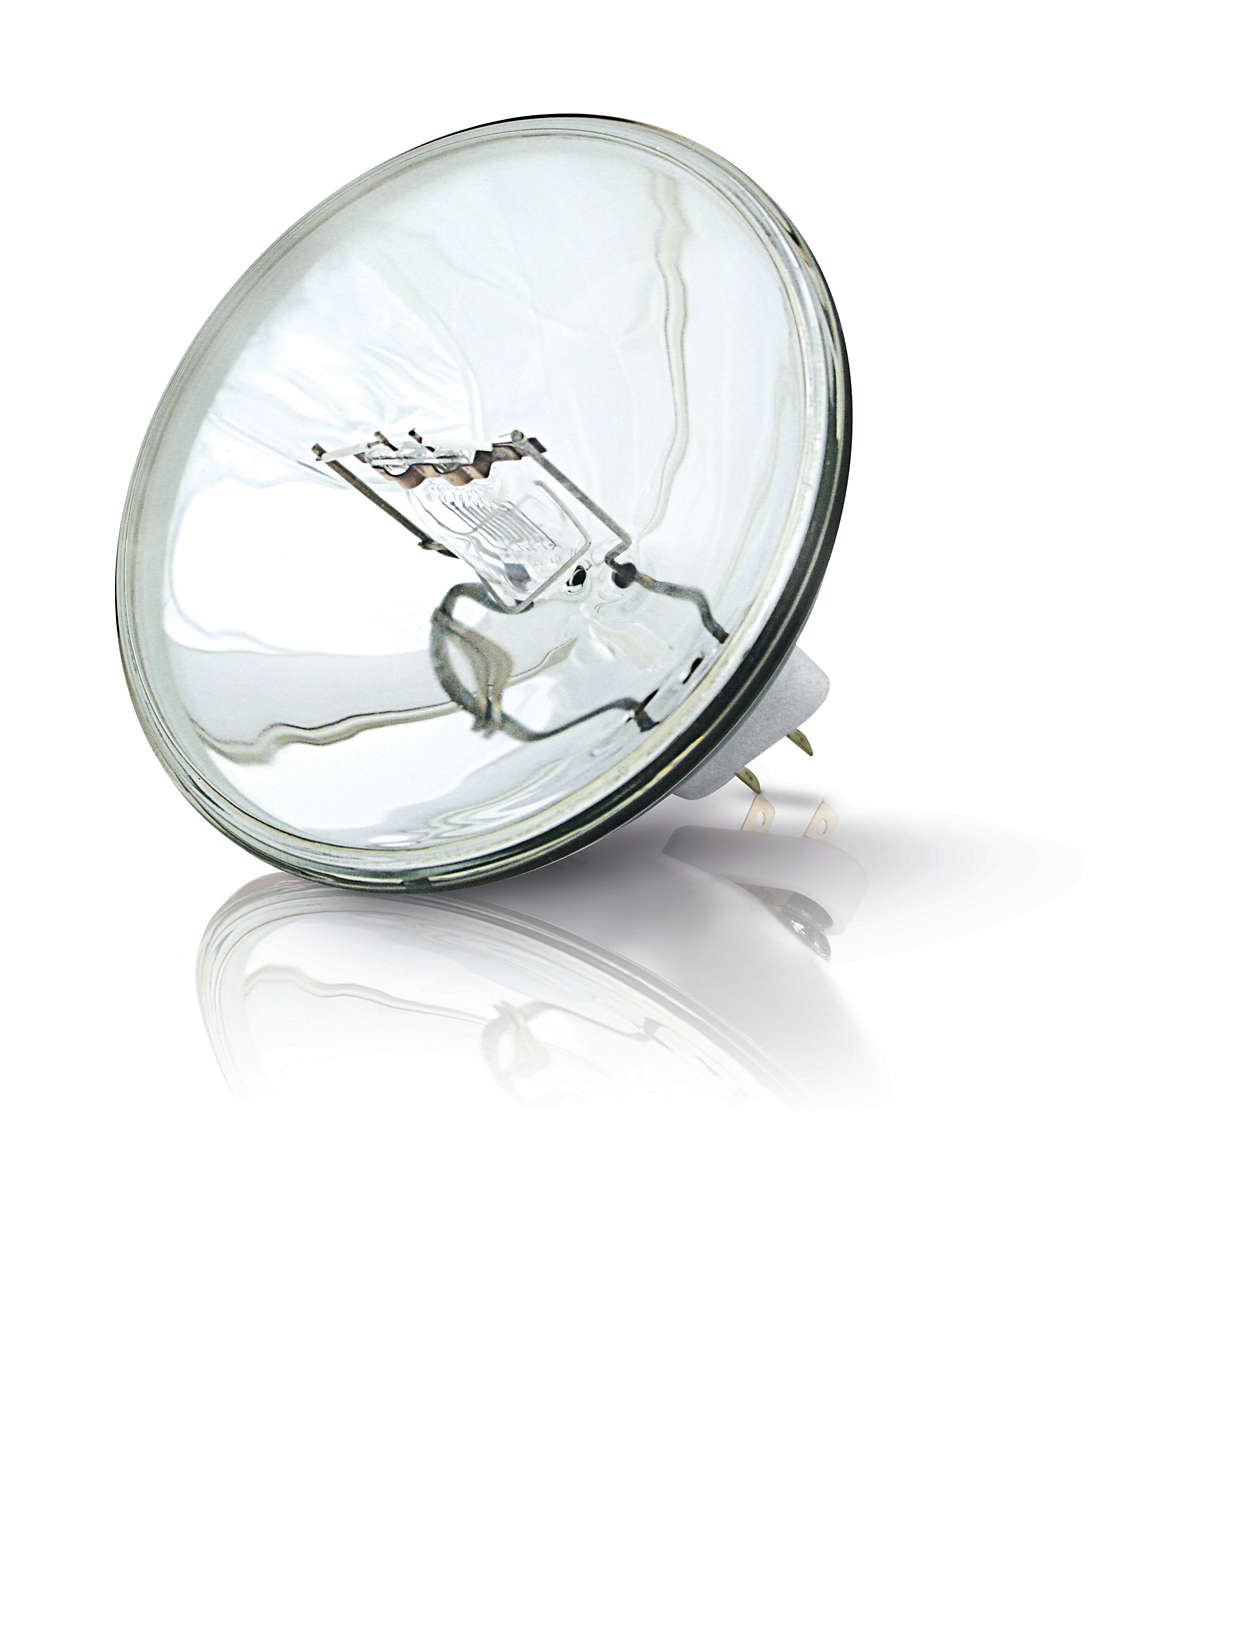 PAR56 and PAR 64 – picking out the smallest of details